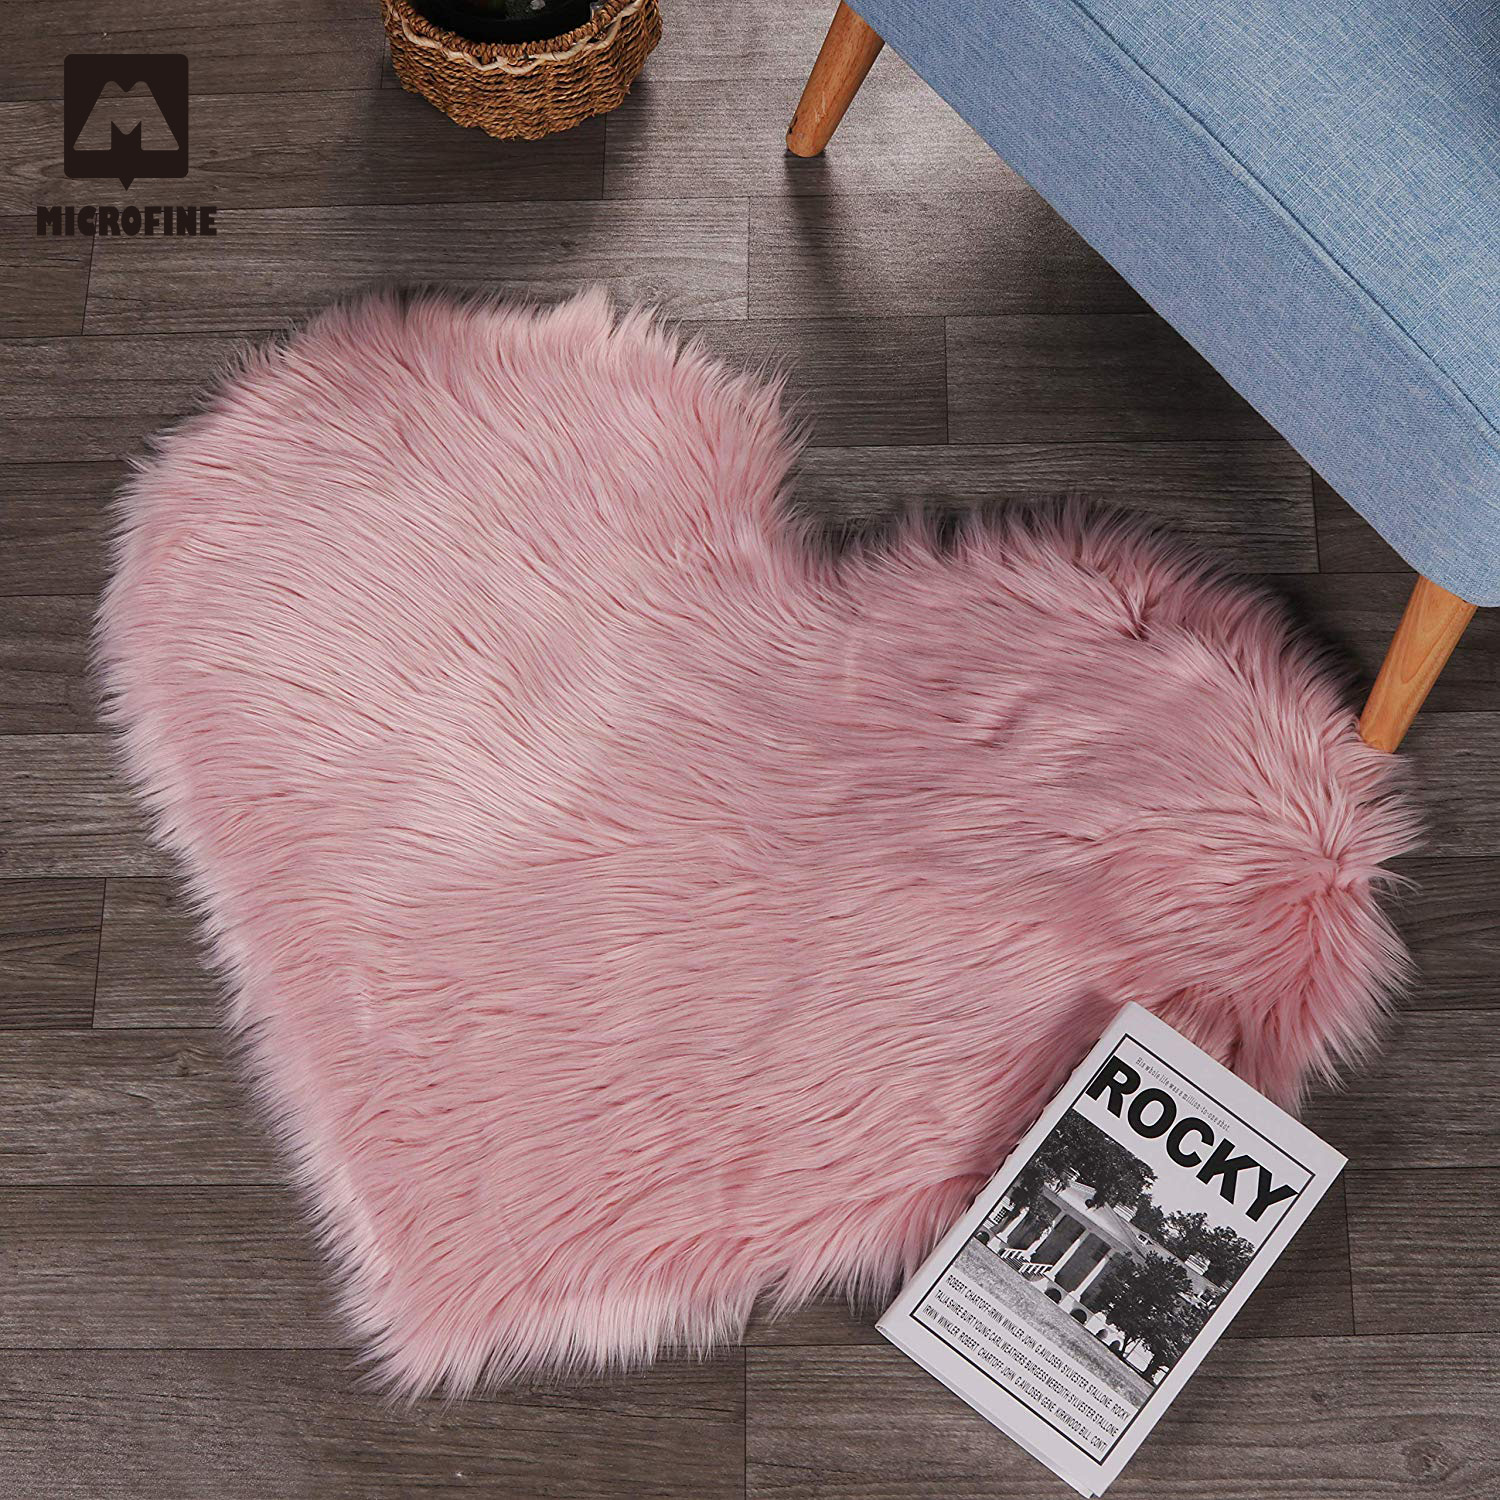 Microfine Furry/Shaggy Carpet Faux Fur Rug For Home Living Room And Mat Children Sheepskin Rugs Area On The Floor Nordic Bedroom